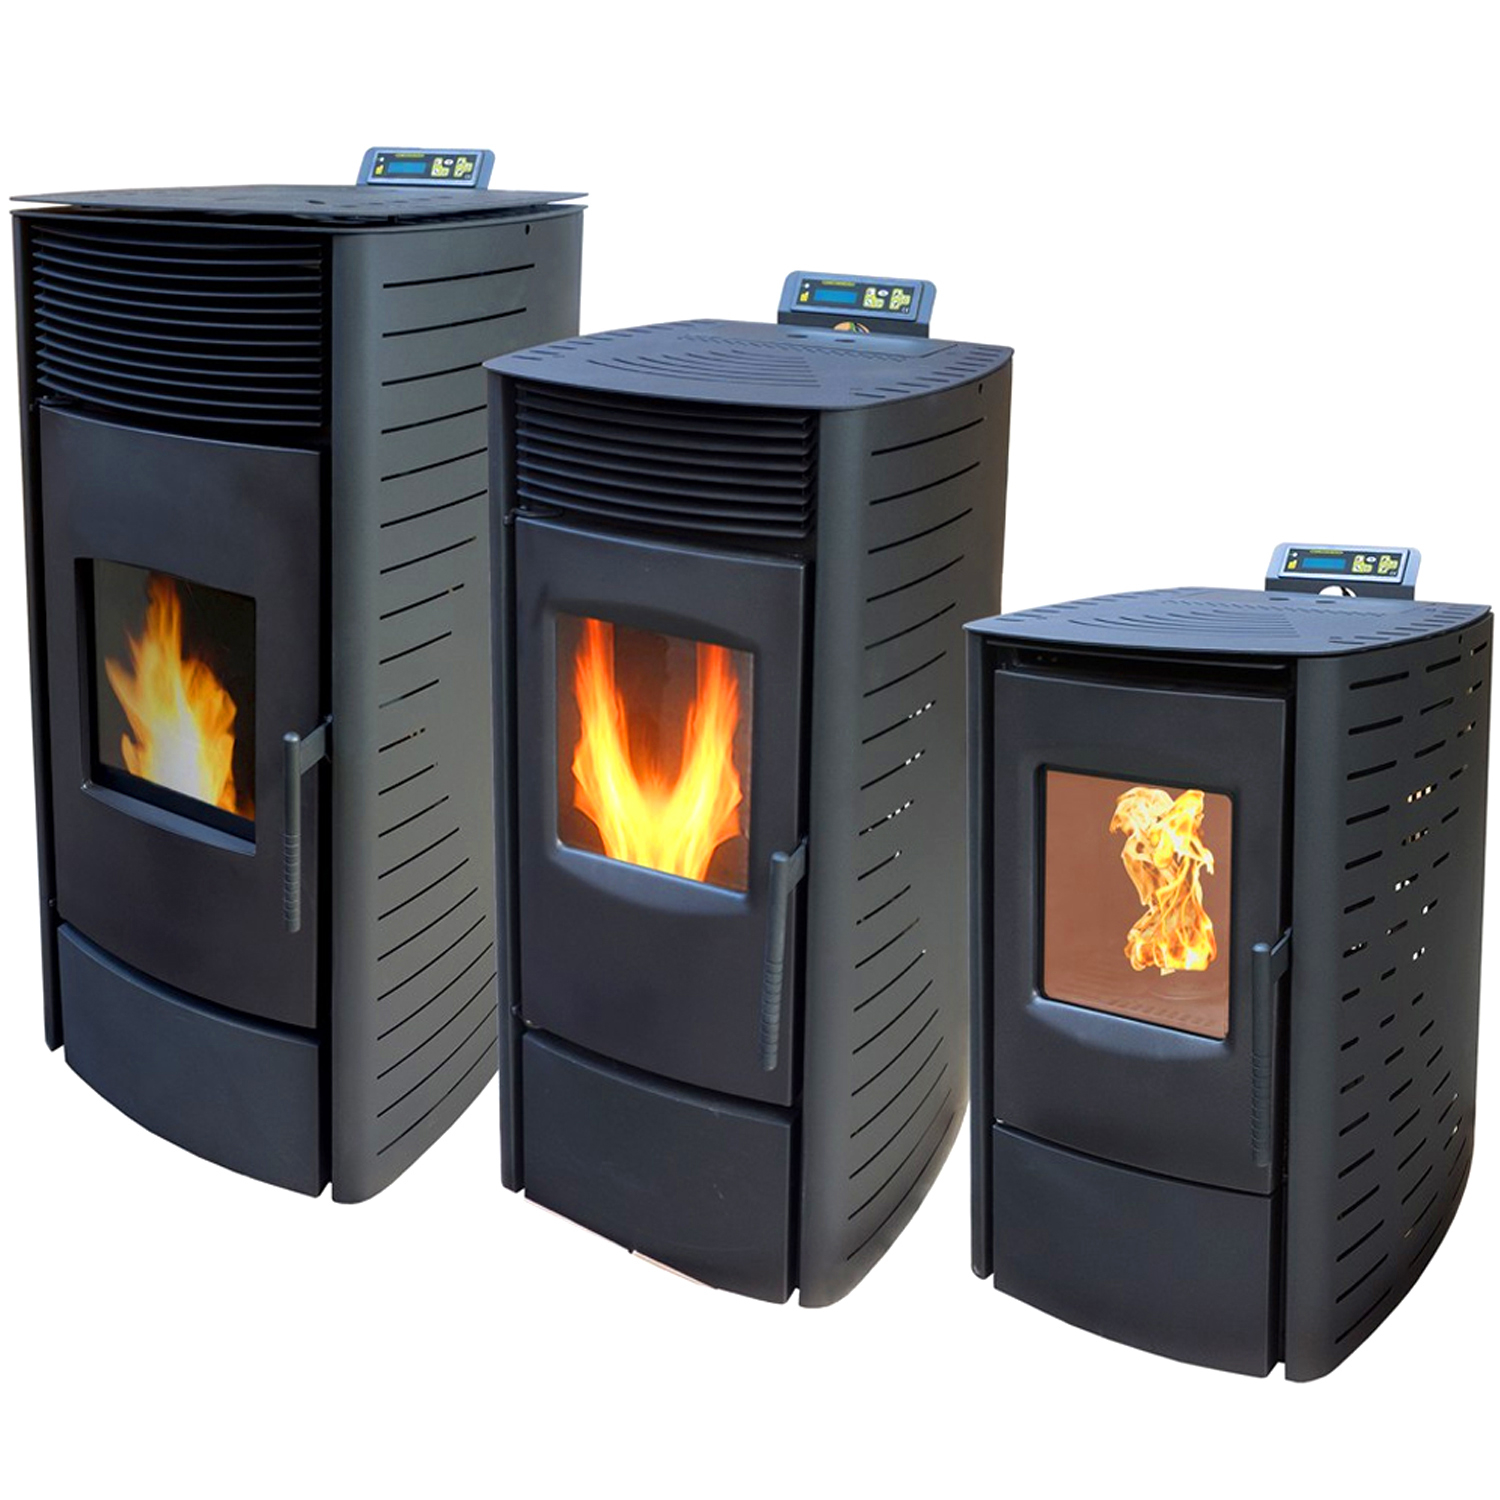 nemaxx pellet stove 3 11 5 kw fire woodburning heating stoves iron burning ebay. Black Bedroom Furniture Sets. Home Design Ideas